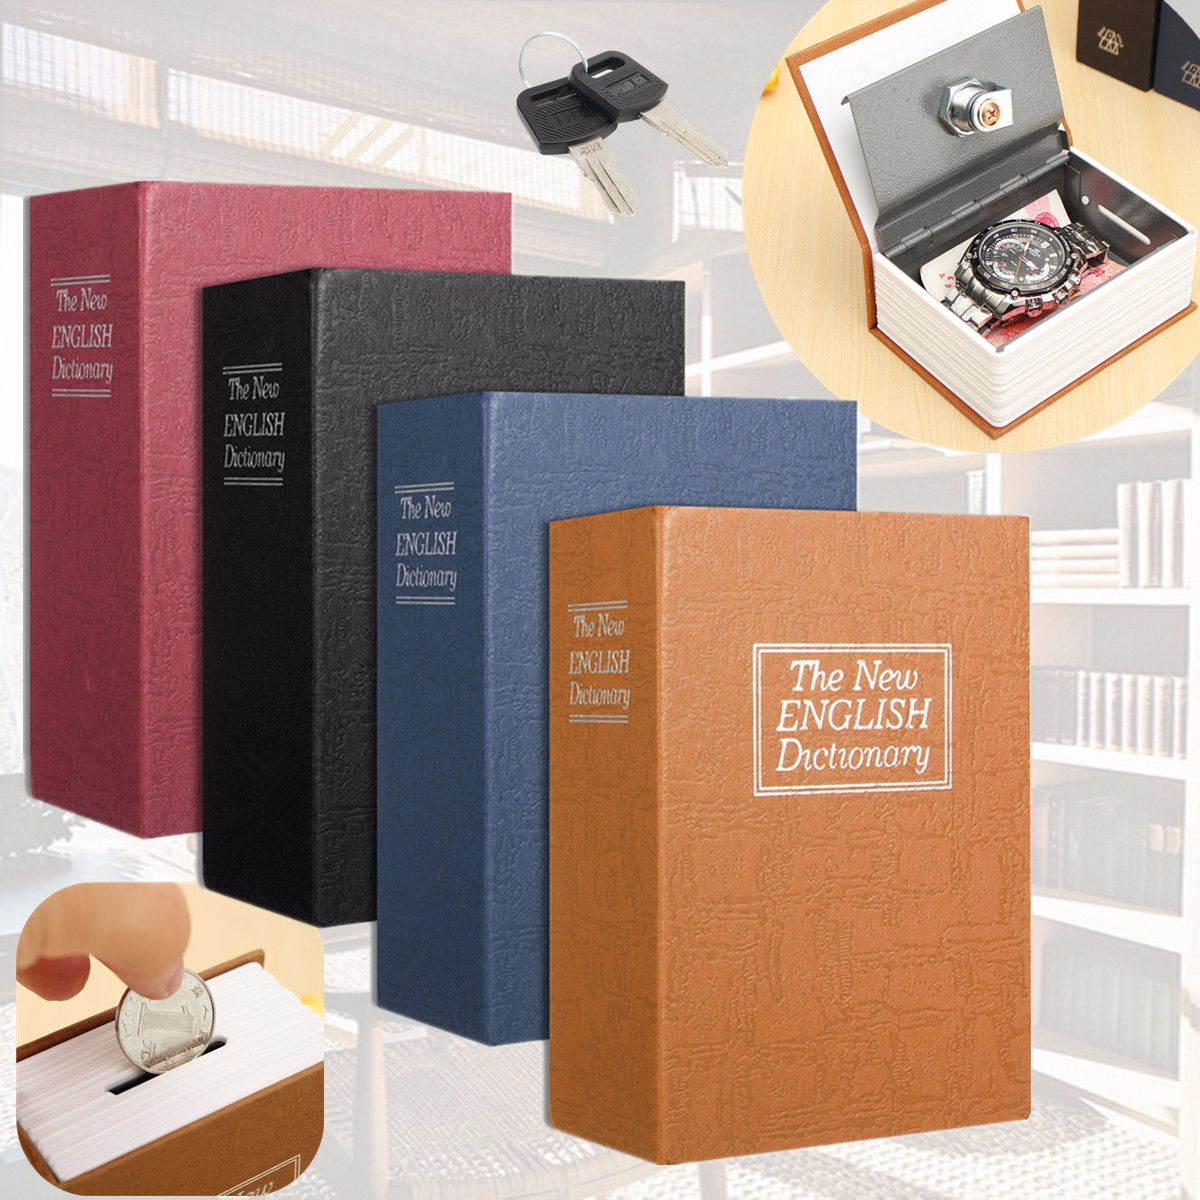 Dictionary Mini Safe Box Book Money Hide Secret Security Safe Lock Cash Money Coin Storage Jewellery key Locker Kid Gift anime cosplay card captor kinomoto sakura jk school cosplay costume girls uniforms costumes coat shirt skirt